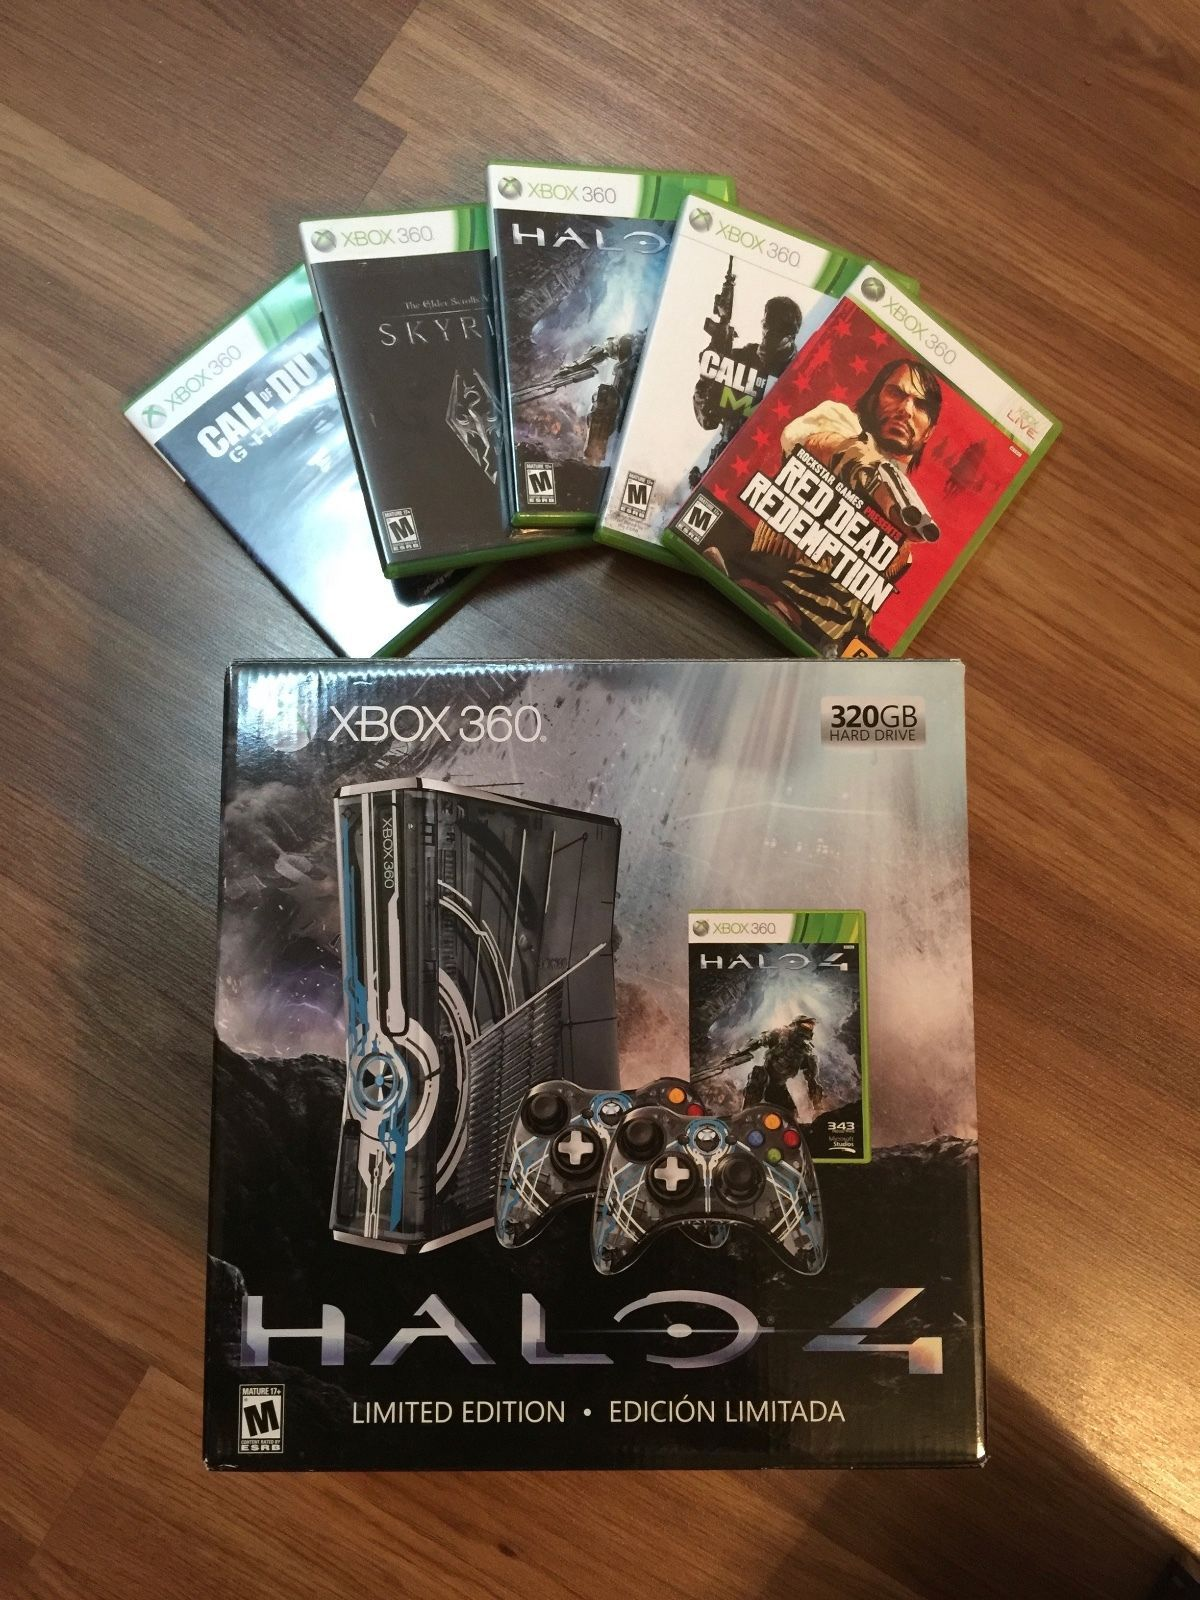 Microsoft Xbox 360 S Halo 4 Limited Edition 320 GB Console Skyrim COD Ghosts https://t.co/qEo1pH91Fy https://t.co/mRG8zyoHJa